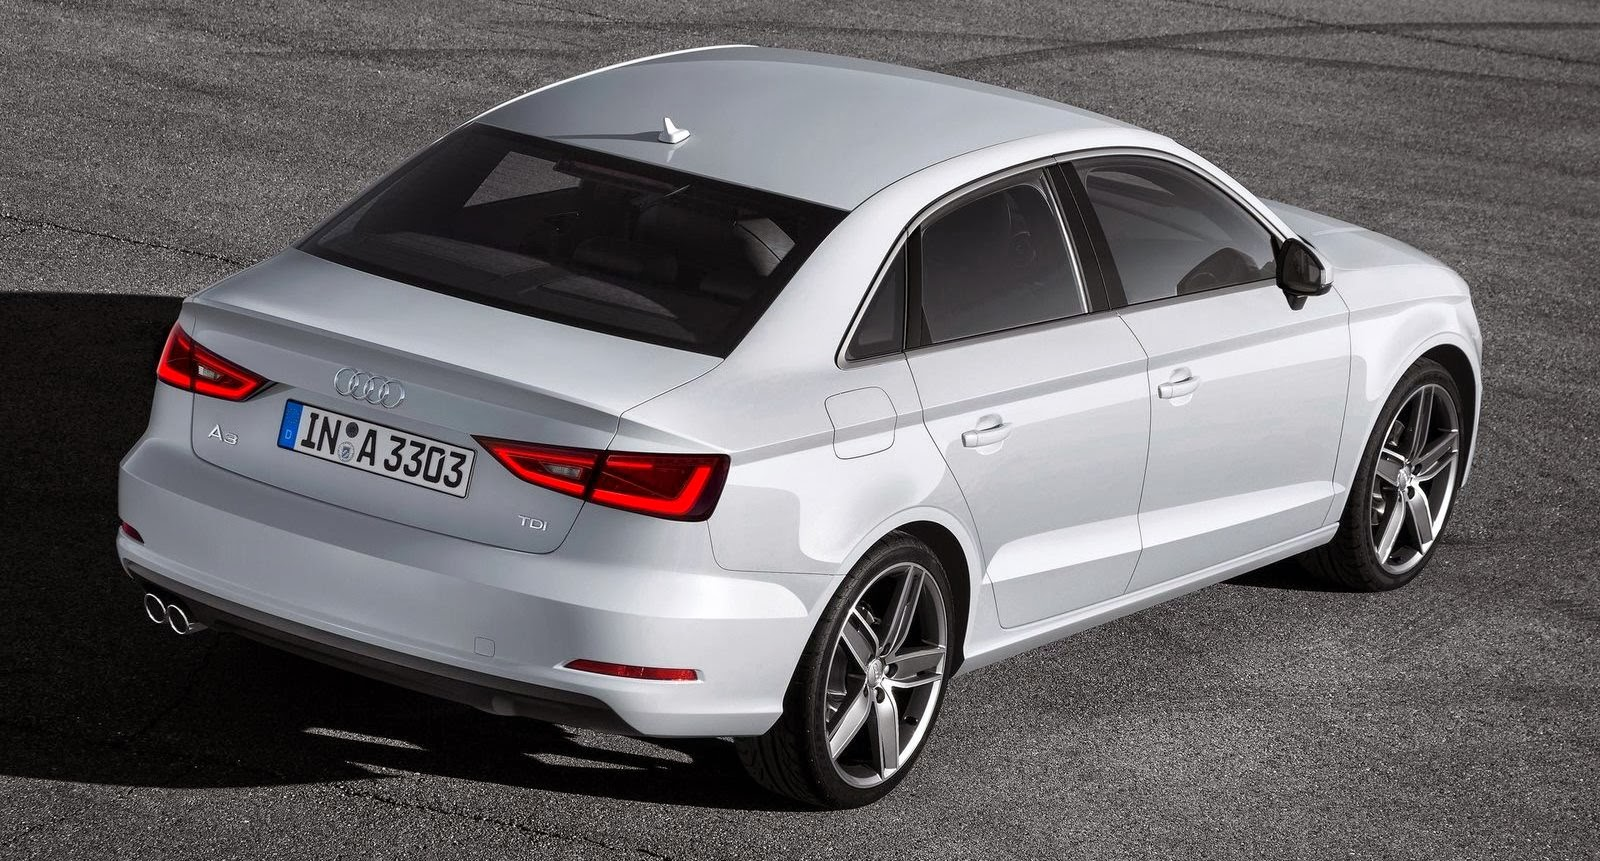 all new audi a3 saloon compact classy cute auto review. Black Bedroom Furniture Sets. Home Design Ideas